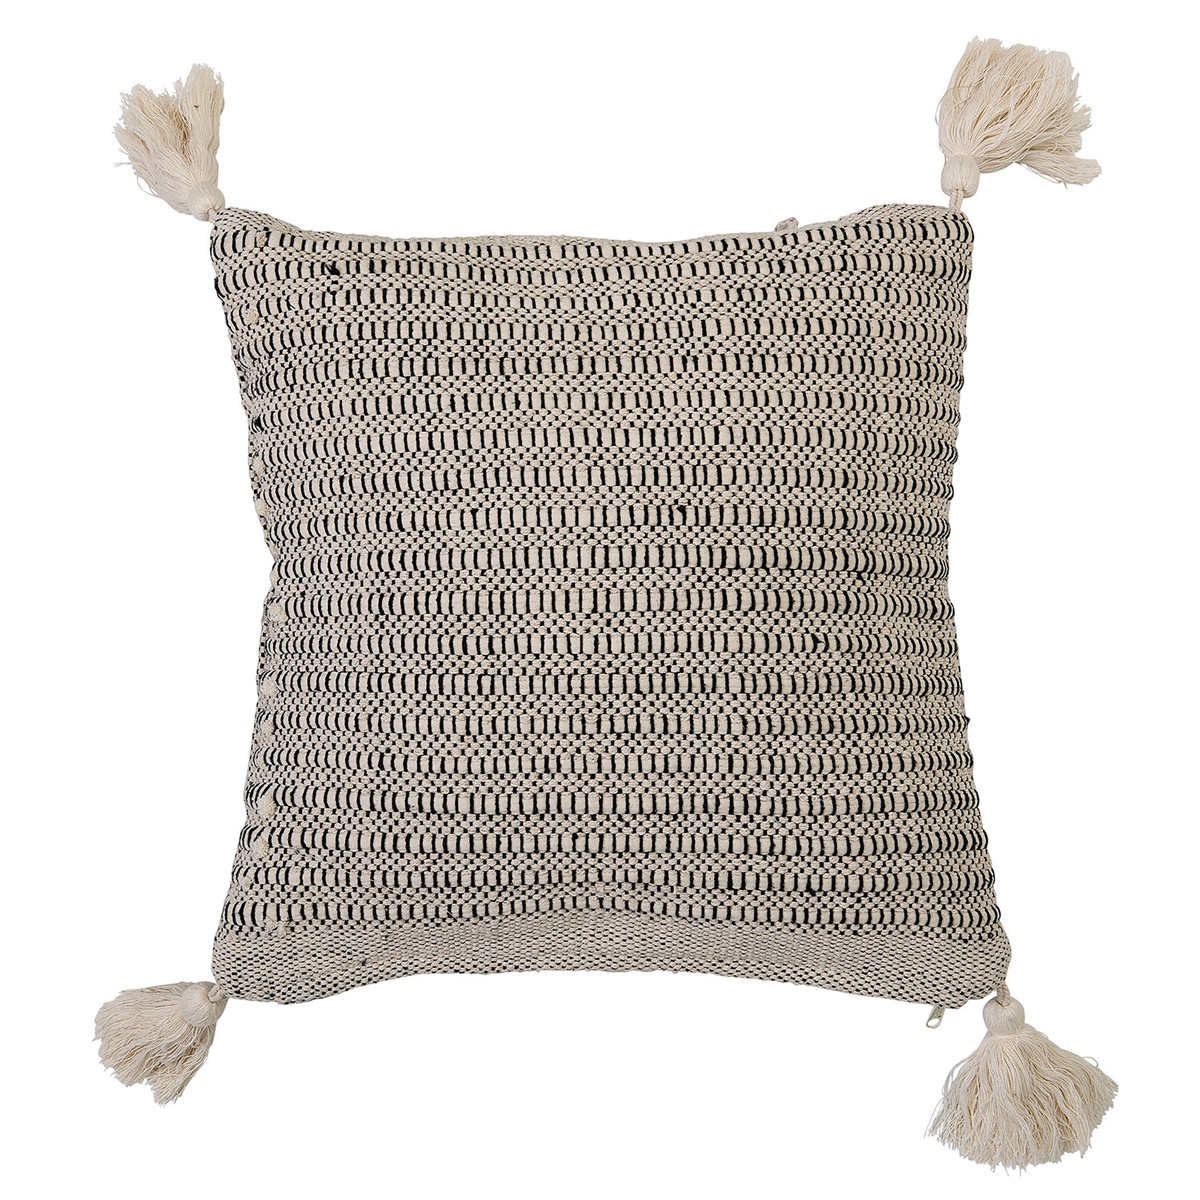 14208522-tassel-textured-cushion-from-bloomingville